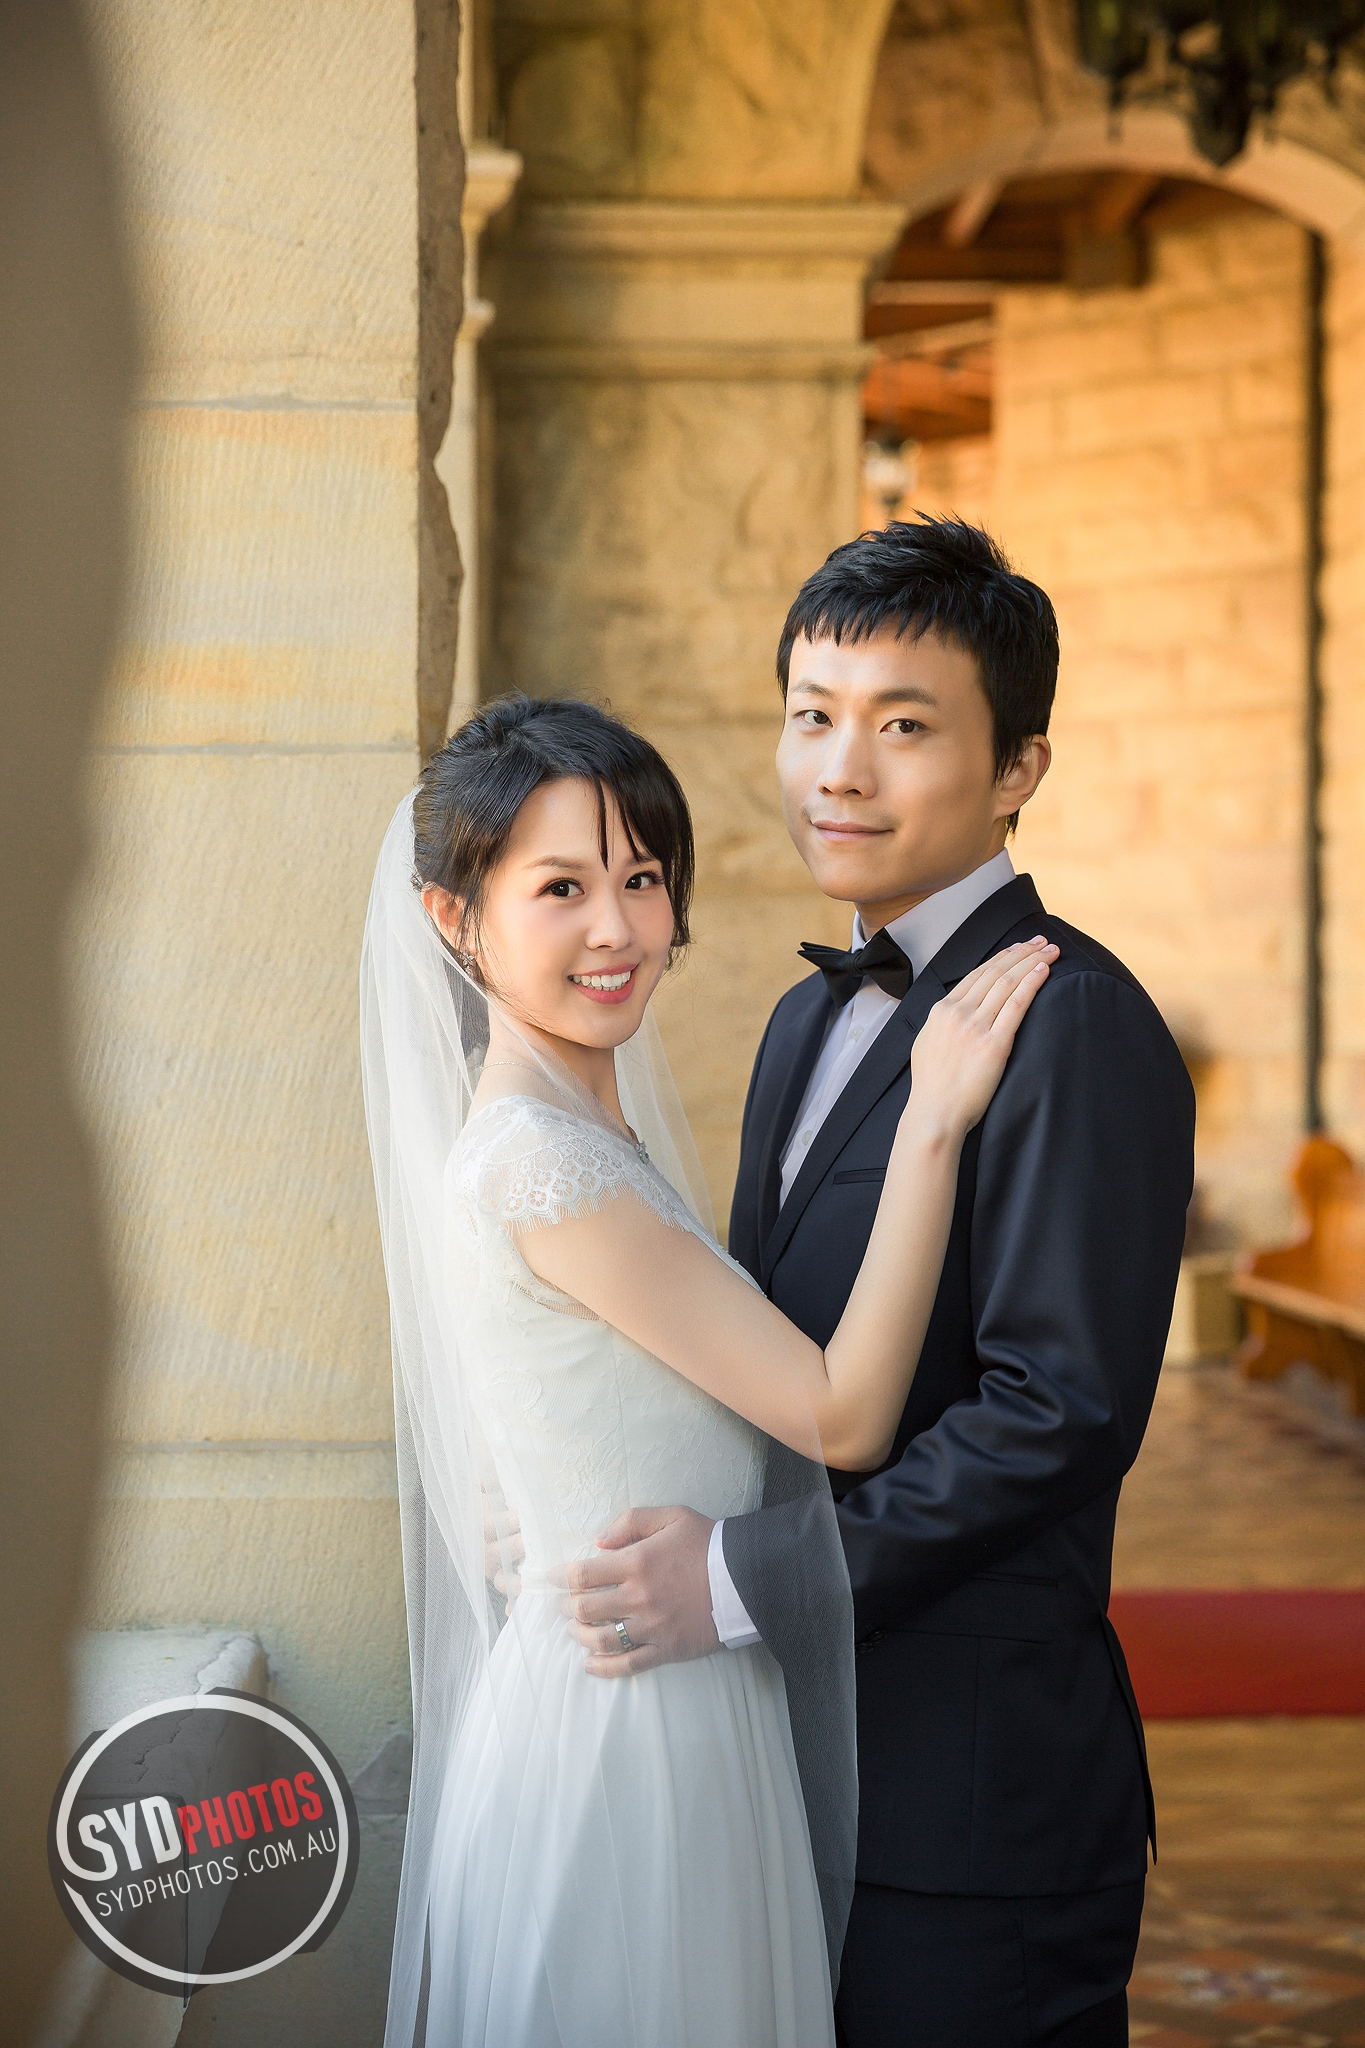 ID-101864-20180721-wedding-小麥-dylan-227.jpg, By Photographer Sydphotos.wedding, Created on 11 Sep 2018, SYDPHOTOS Photography all rights reserved.